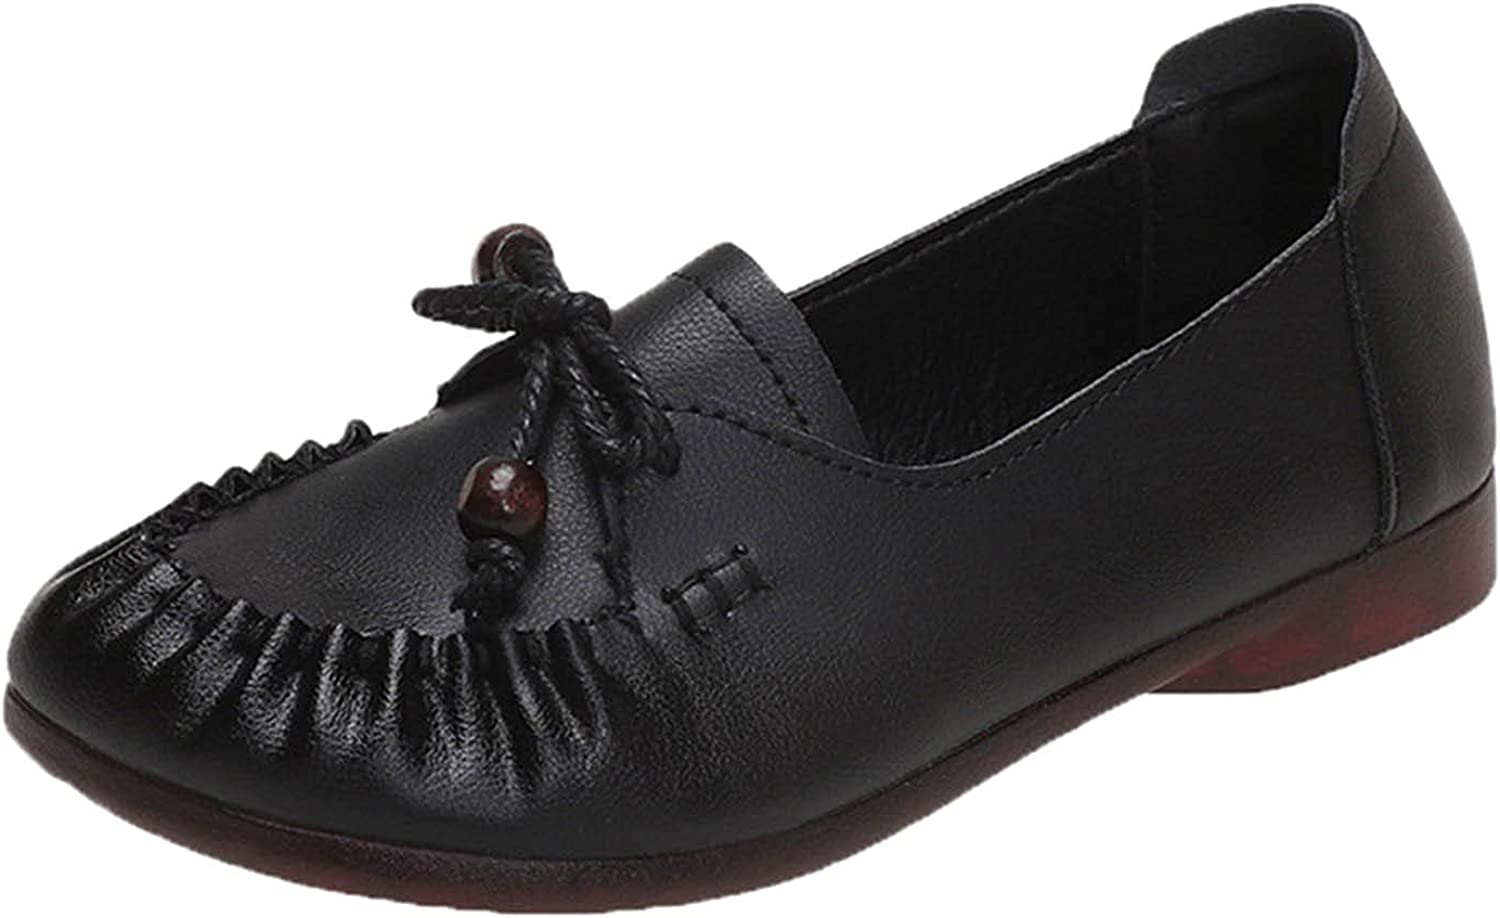 PMUYBHF Women's Leather Penny Loafers Excellence Shoes Casual Slip Driving safety